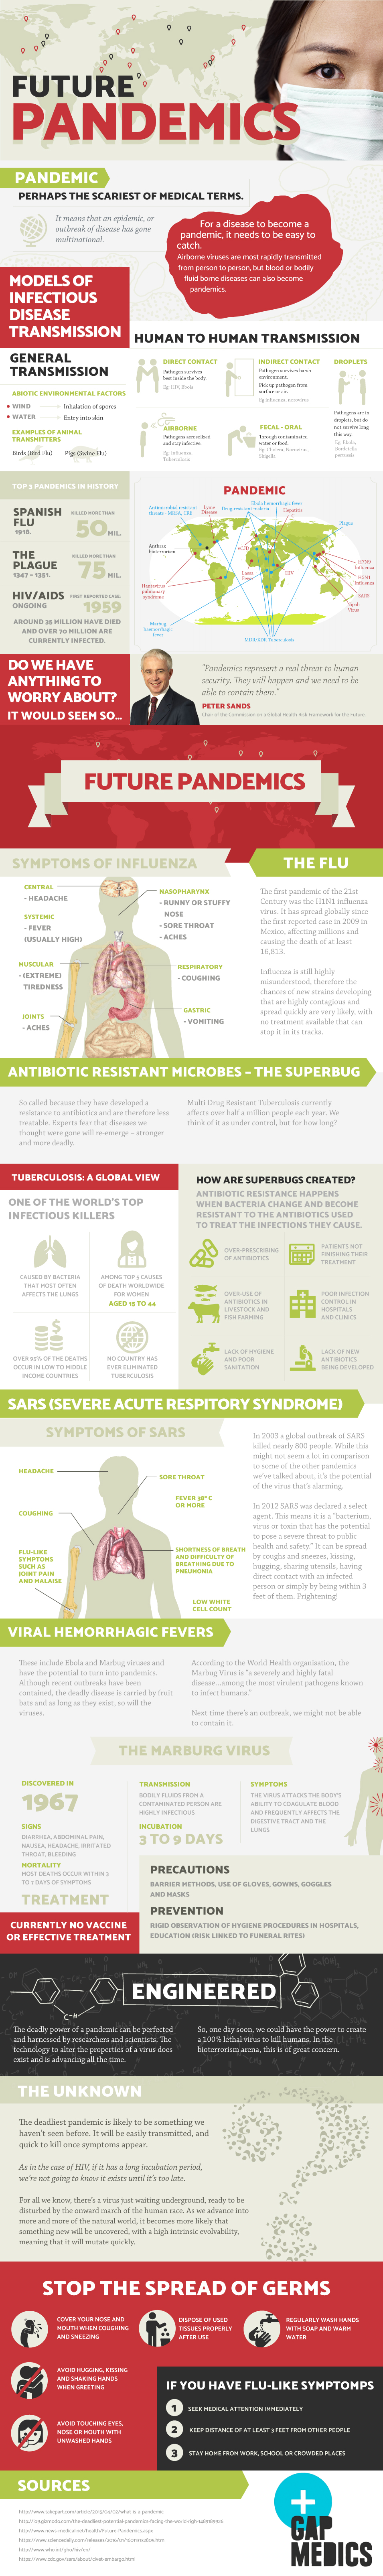 How Can You Fight The Future Epidemic? - Infographic